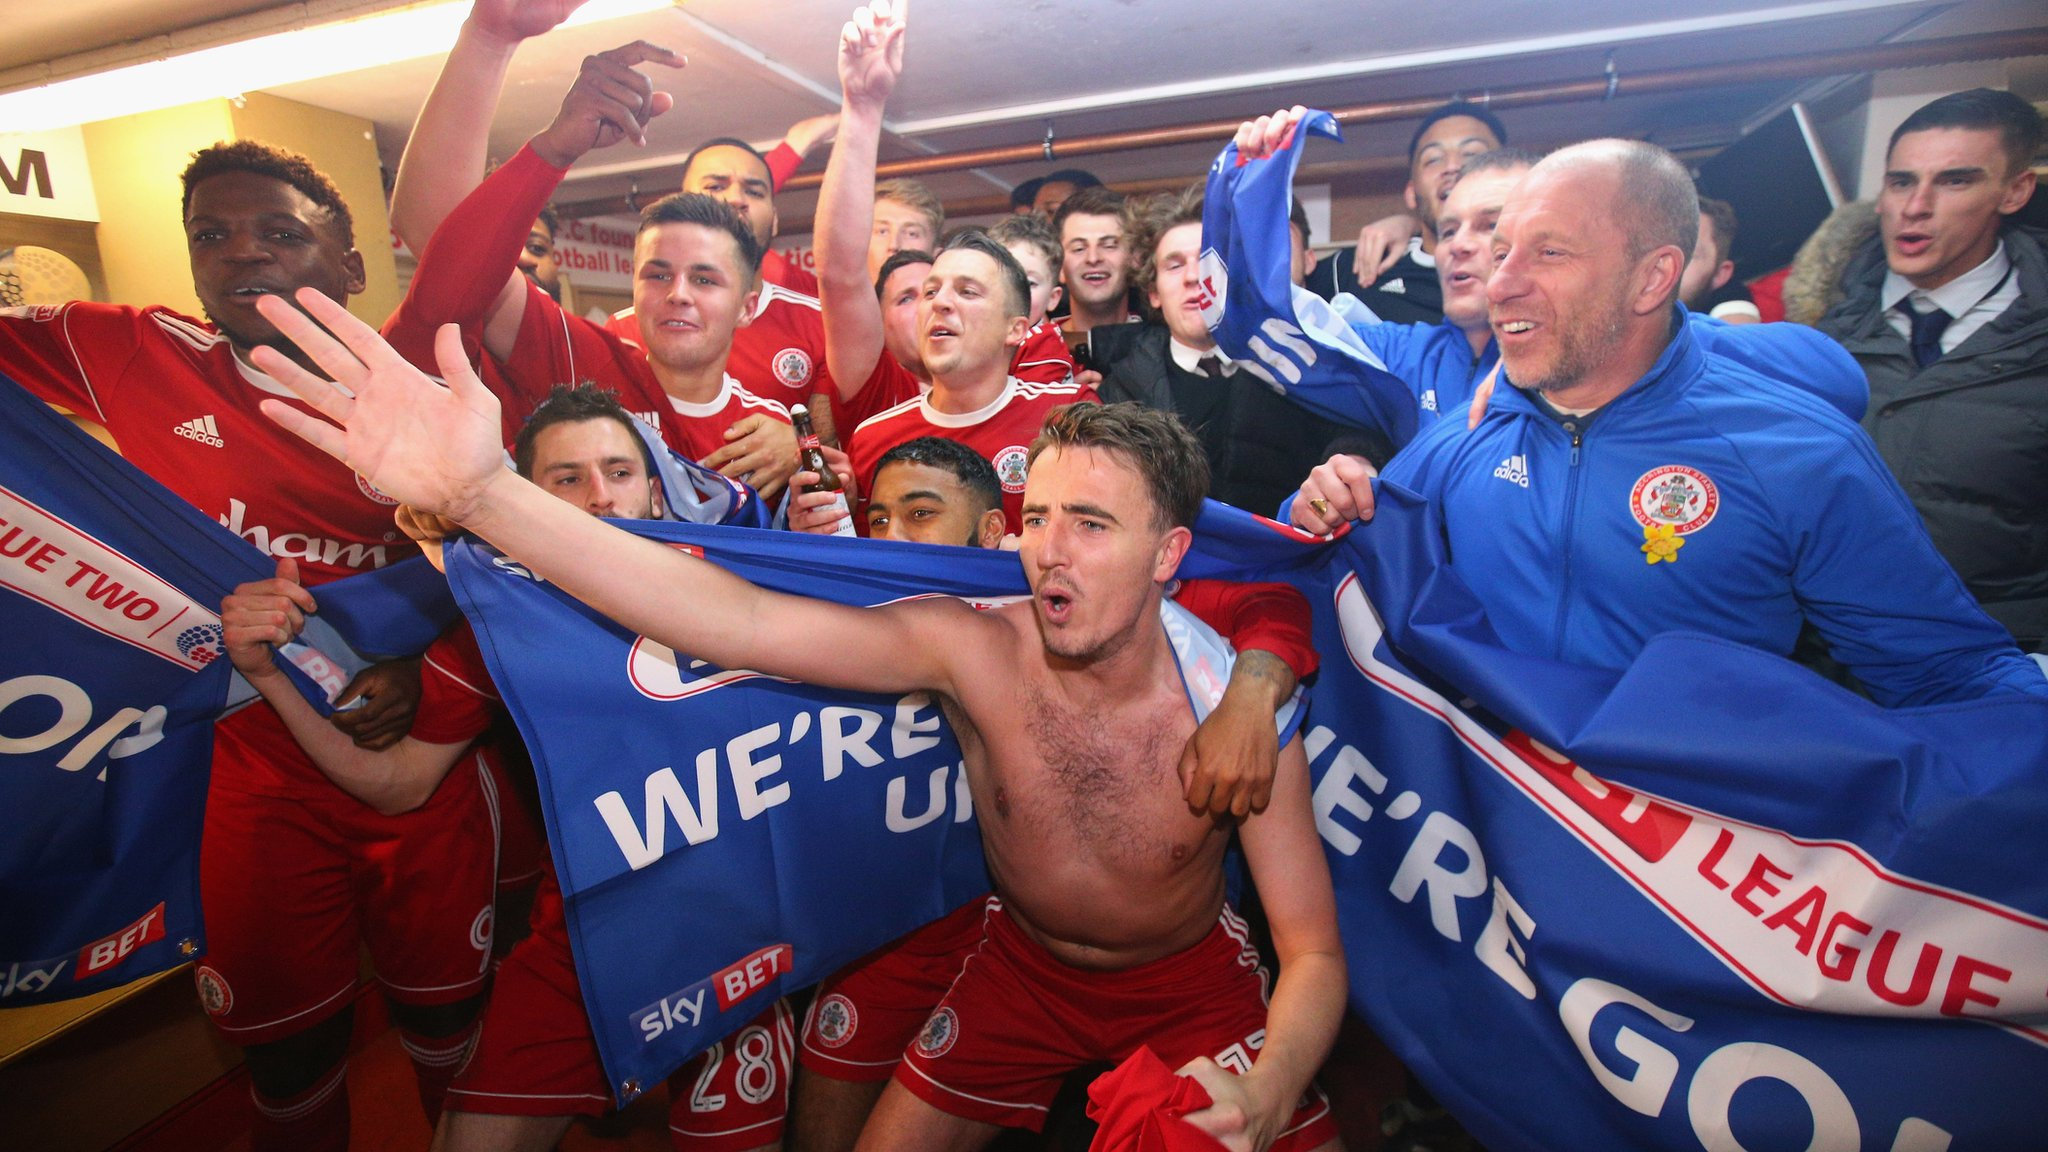 Famous for a milk advert? Not anymore - how 'minnows' Accrington conquered League Two